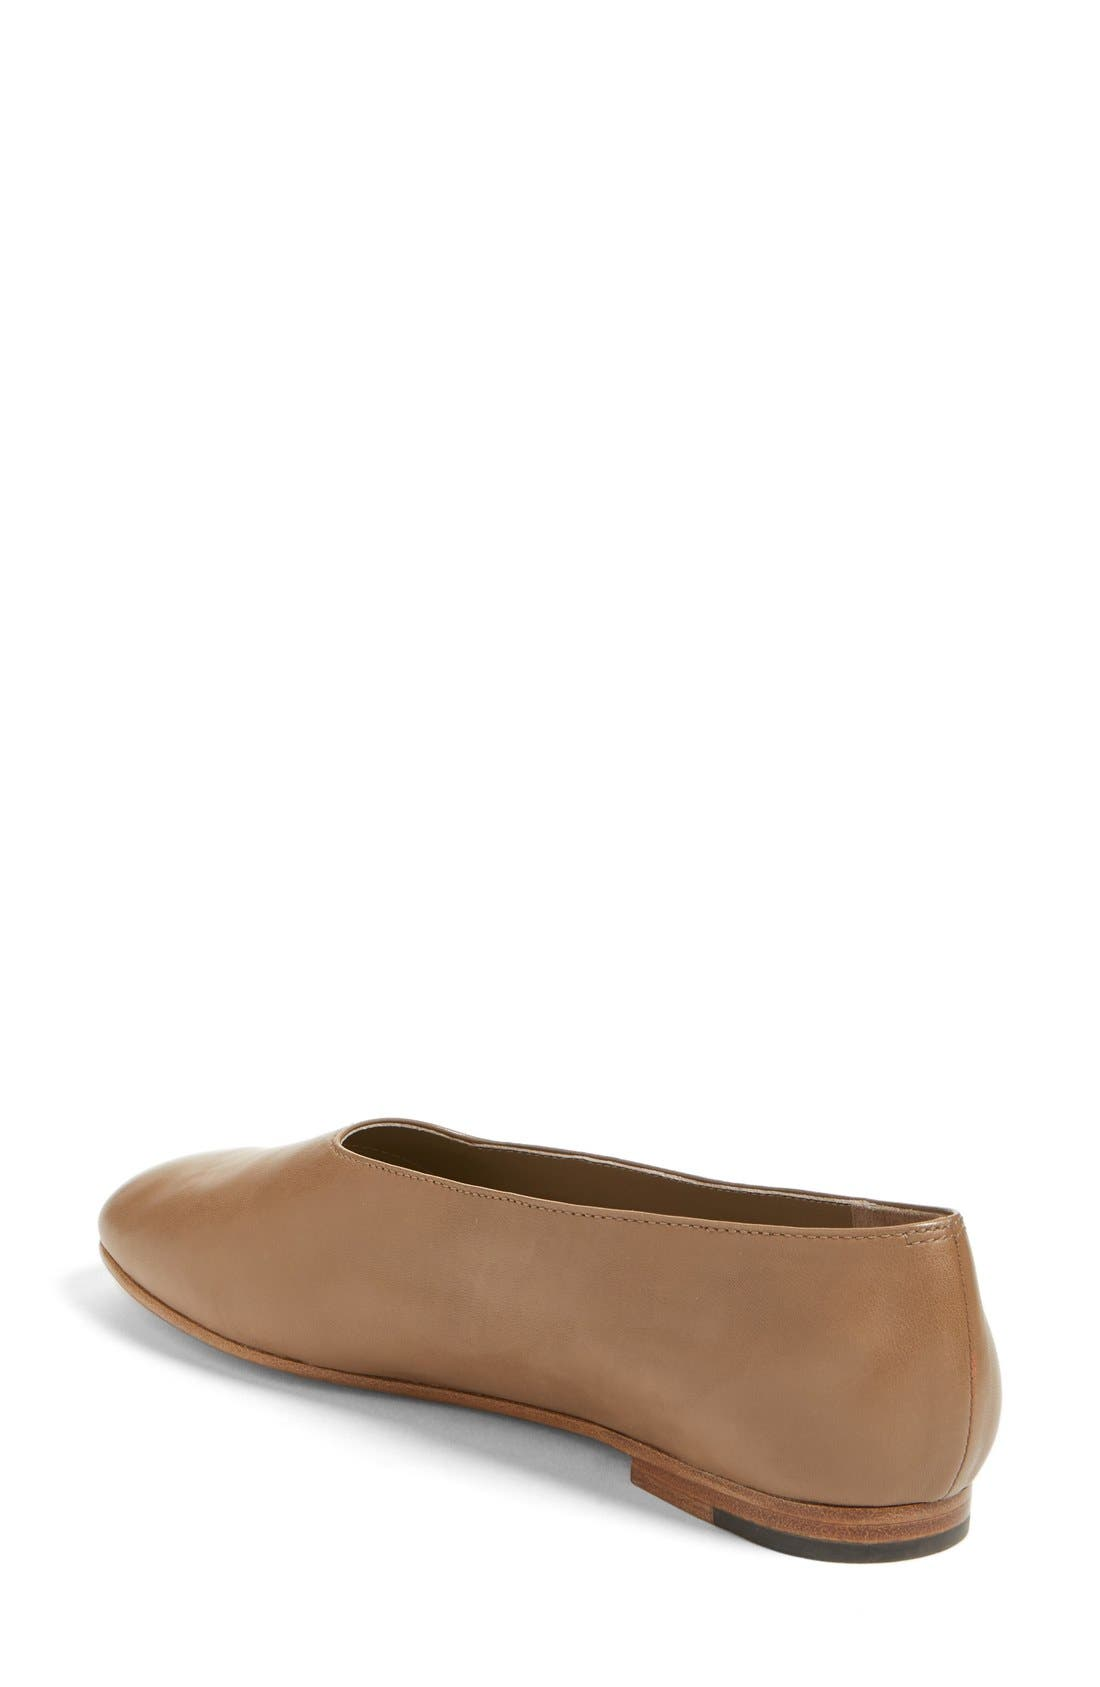 'Maxwell' Flat,                             Alternate thumbnail 2, color,                             Dark Taupe Leather